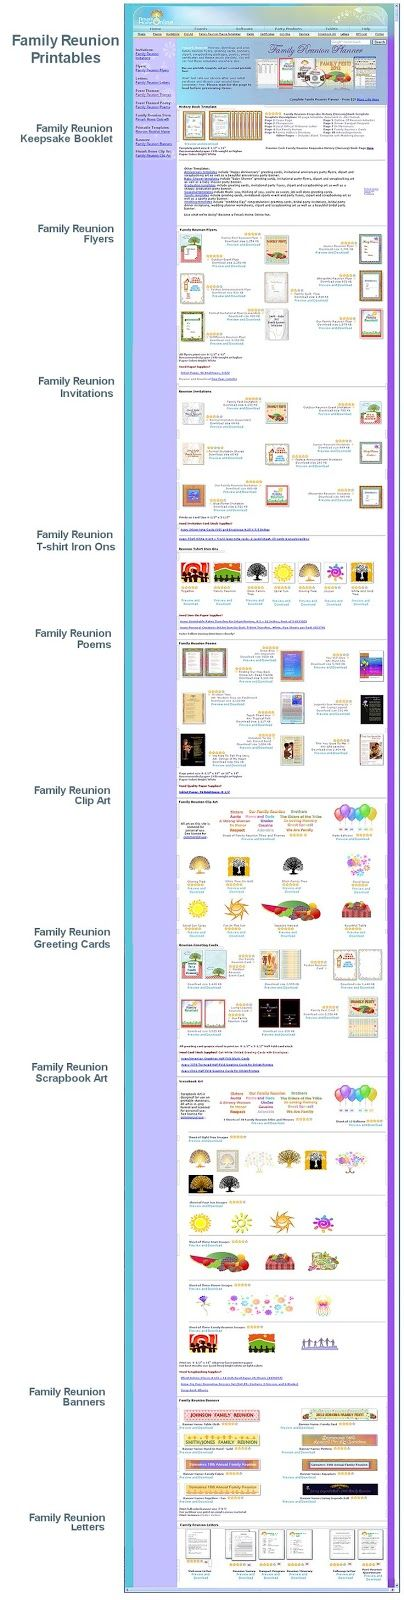 Family reunion planning blog featuring ideas, activities - family reunion templates